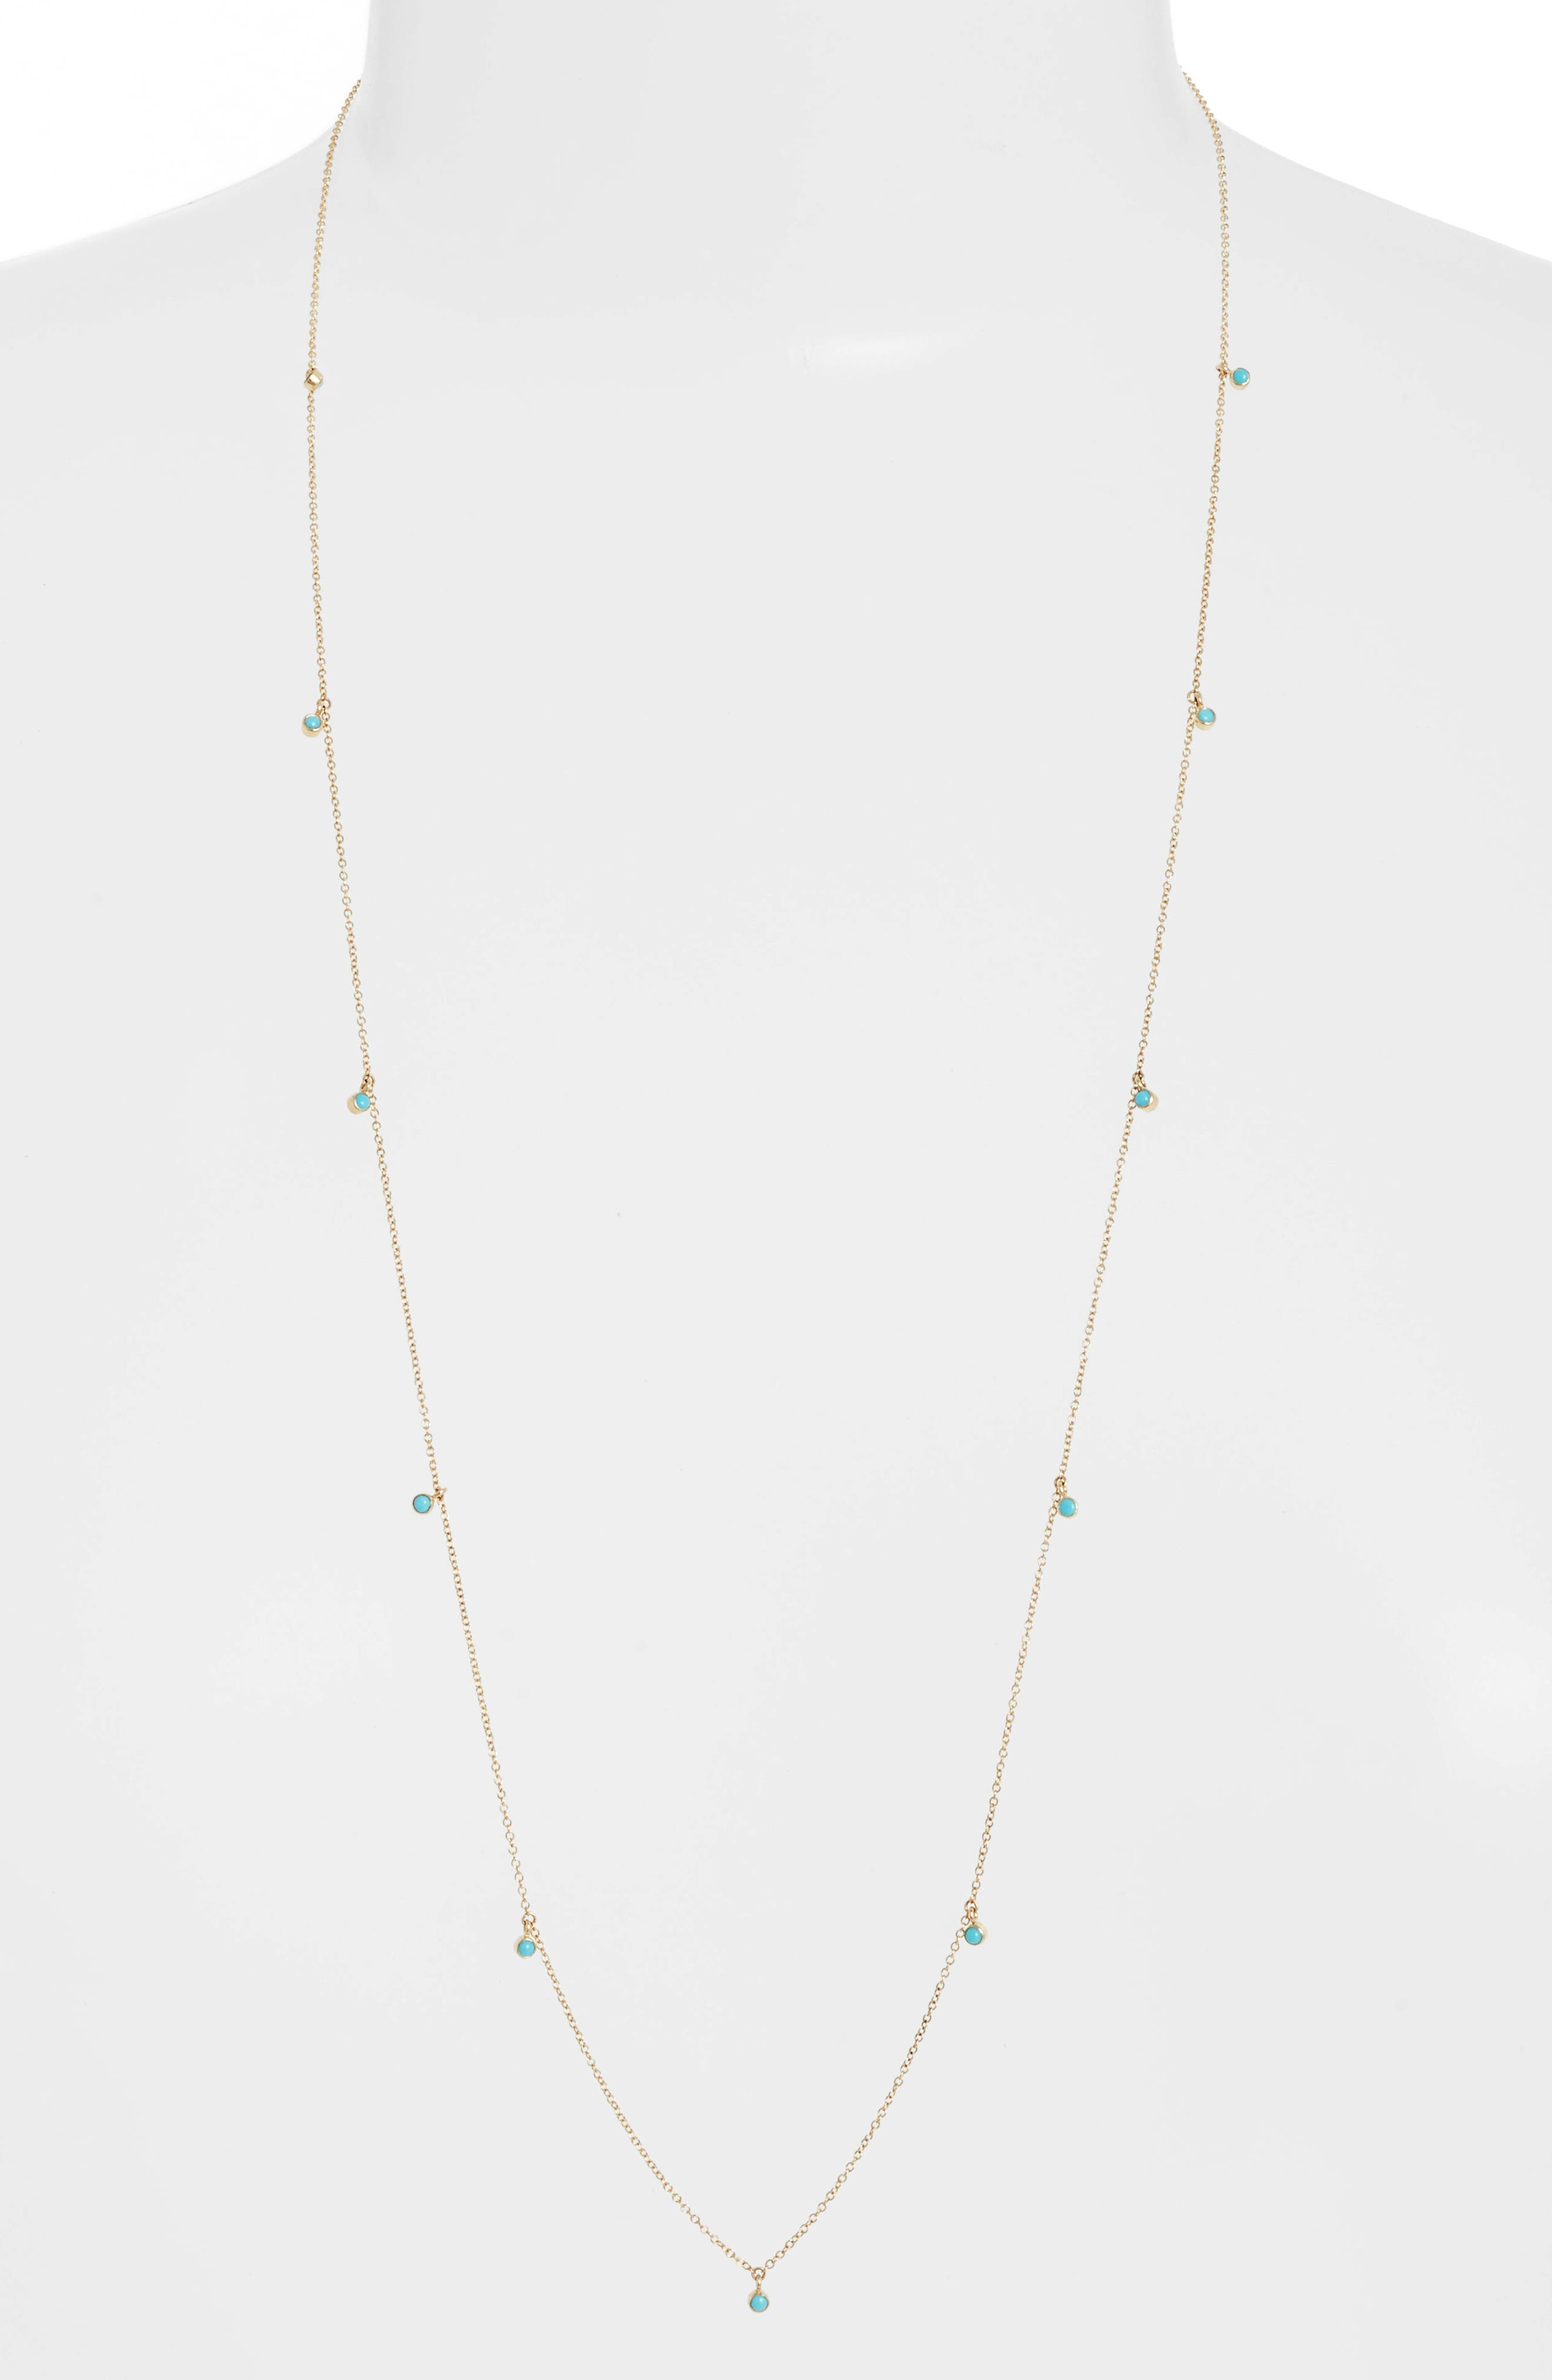 Dangling Turquoise Station Long Necklace,                             Main thumbnail 1, color,                             YELLOW GOLD